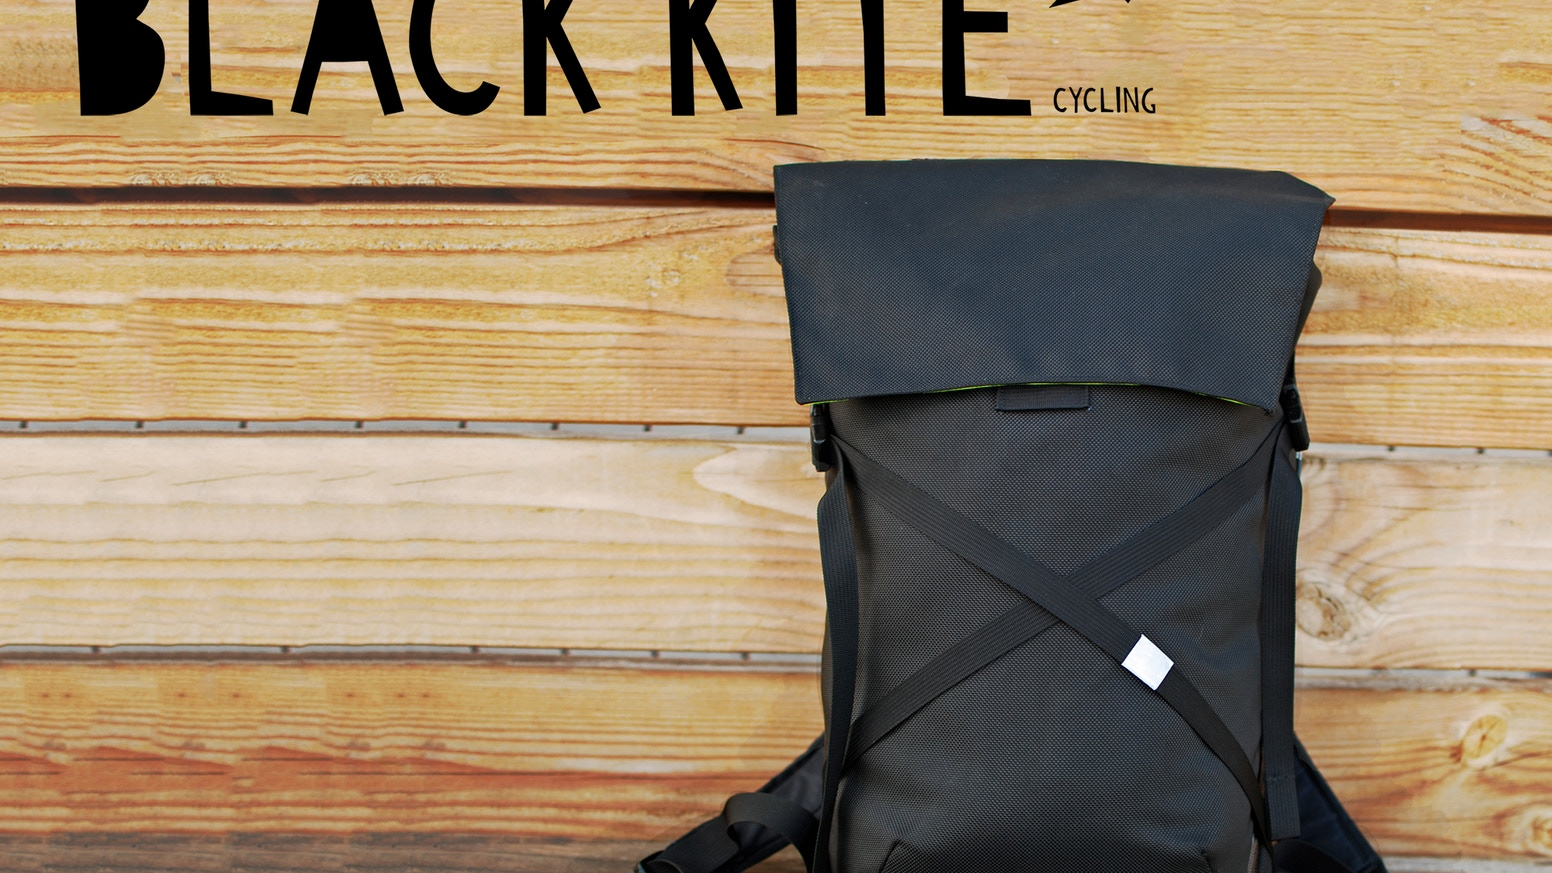 An ultra convenient bike pack: Take out your phone, wallet, or bike lock without ever taking off the bag. Reach inside while you ride!